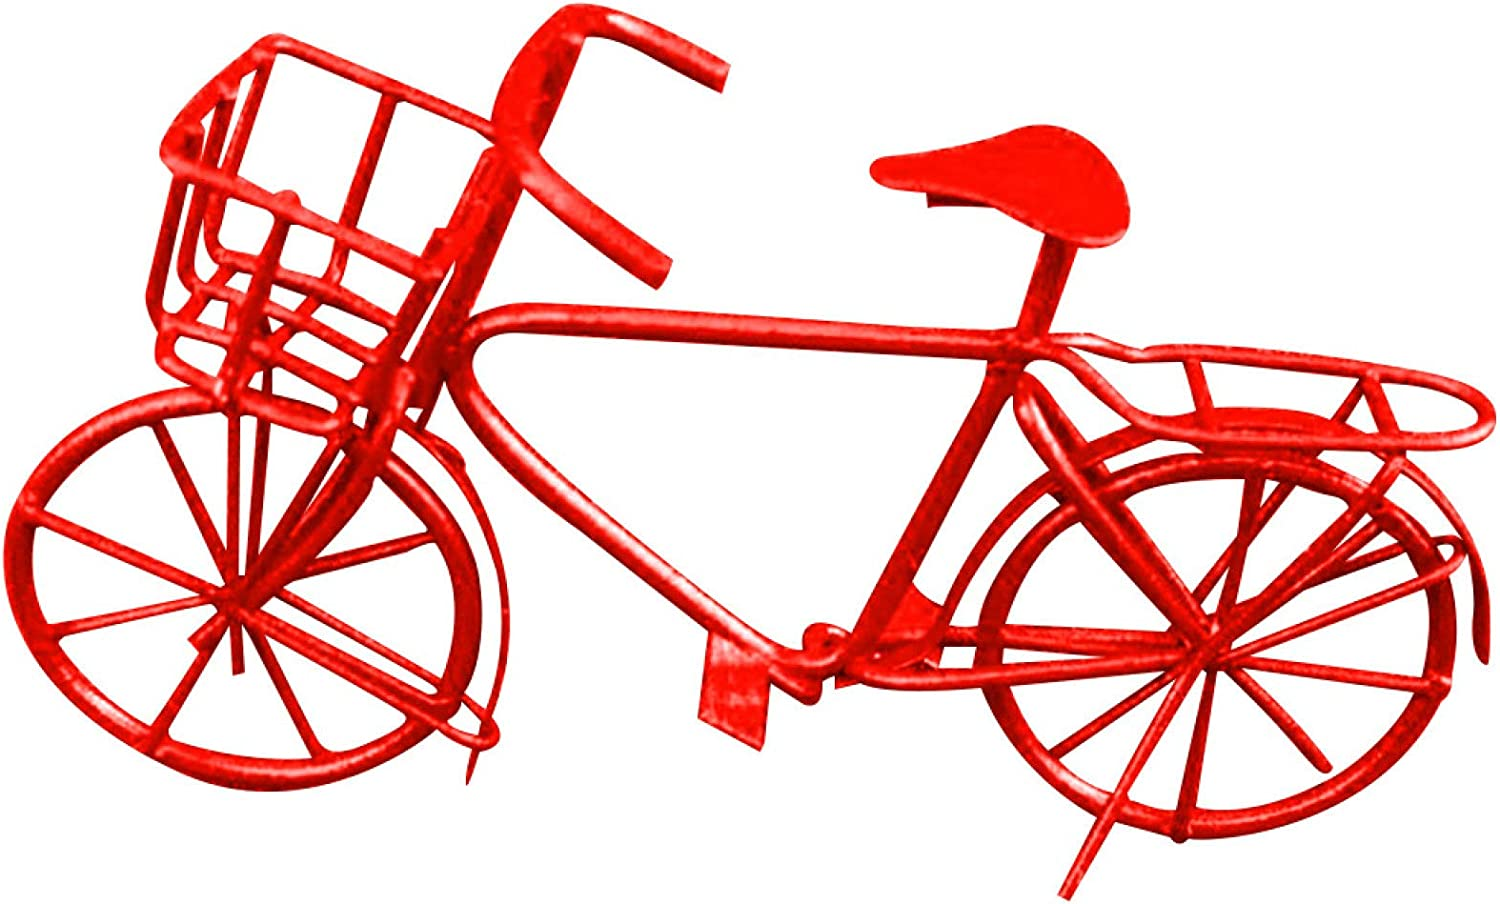 xxiaoTHAWxe Dollhouse Decoration Accessories, Doll House Miniature Furniture,1/12 Scale Metal Mini Bike Bicycle Miniature Doll House Desktop Ornament Toy - Red